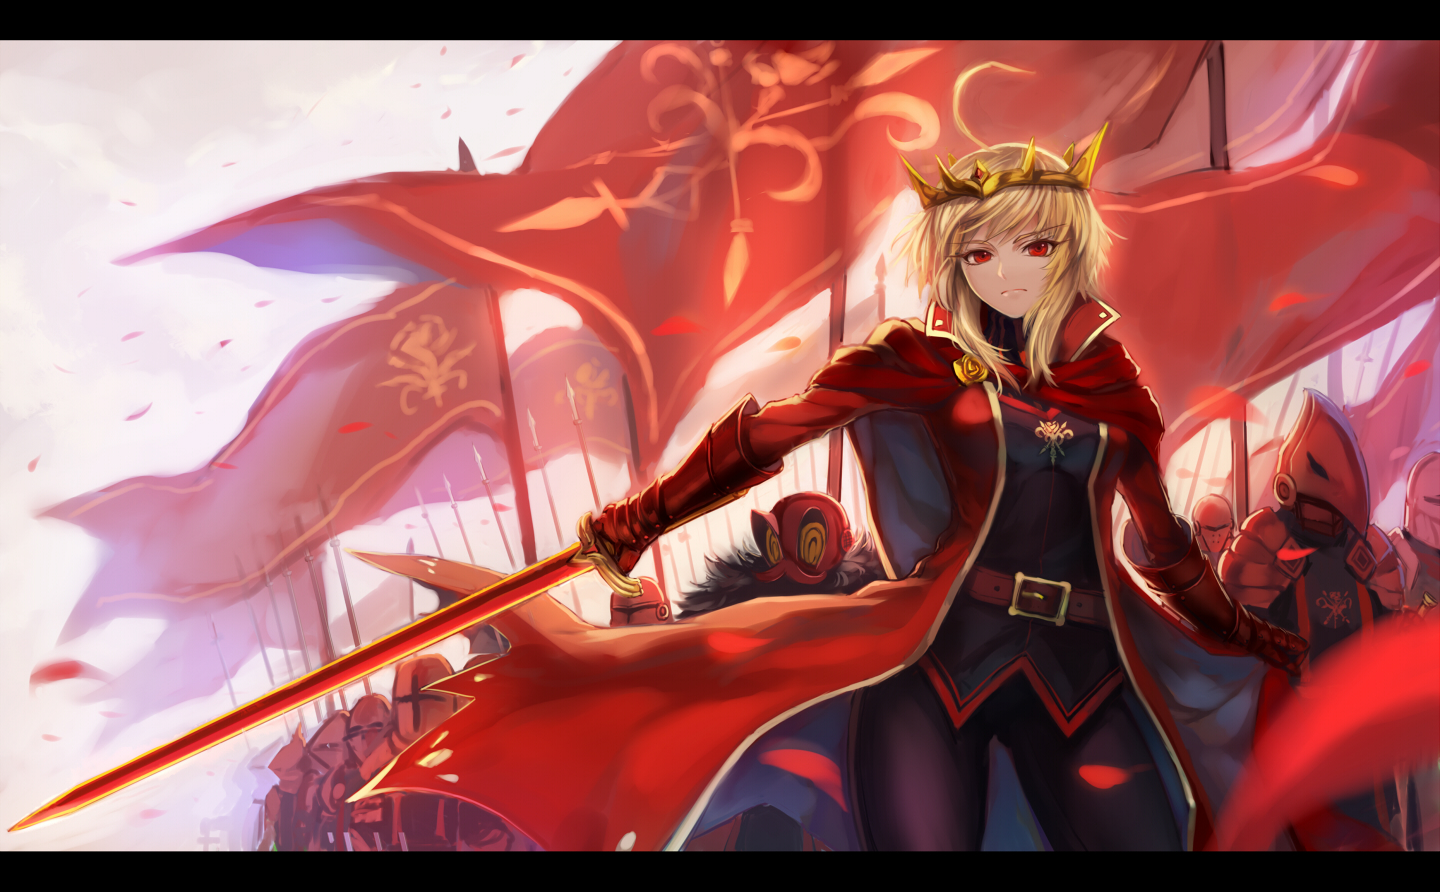 armor blonde_hair crown pixiv_fantasia red_eyes ryuuzaki_itsu sword tagme weapon